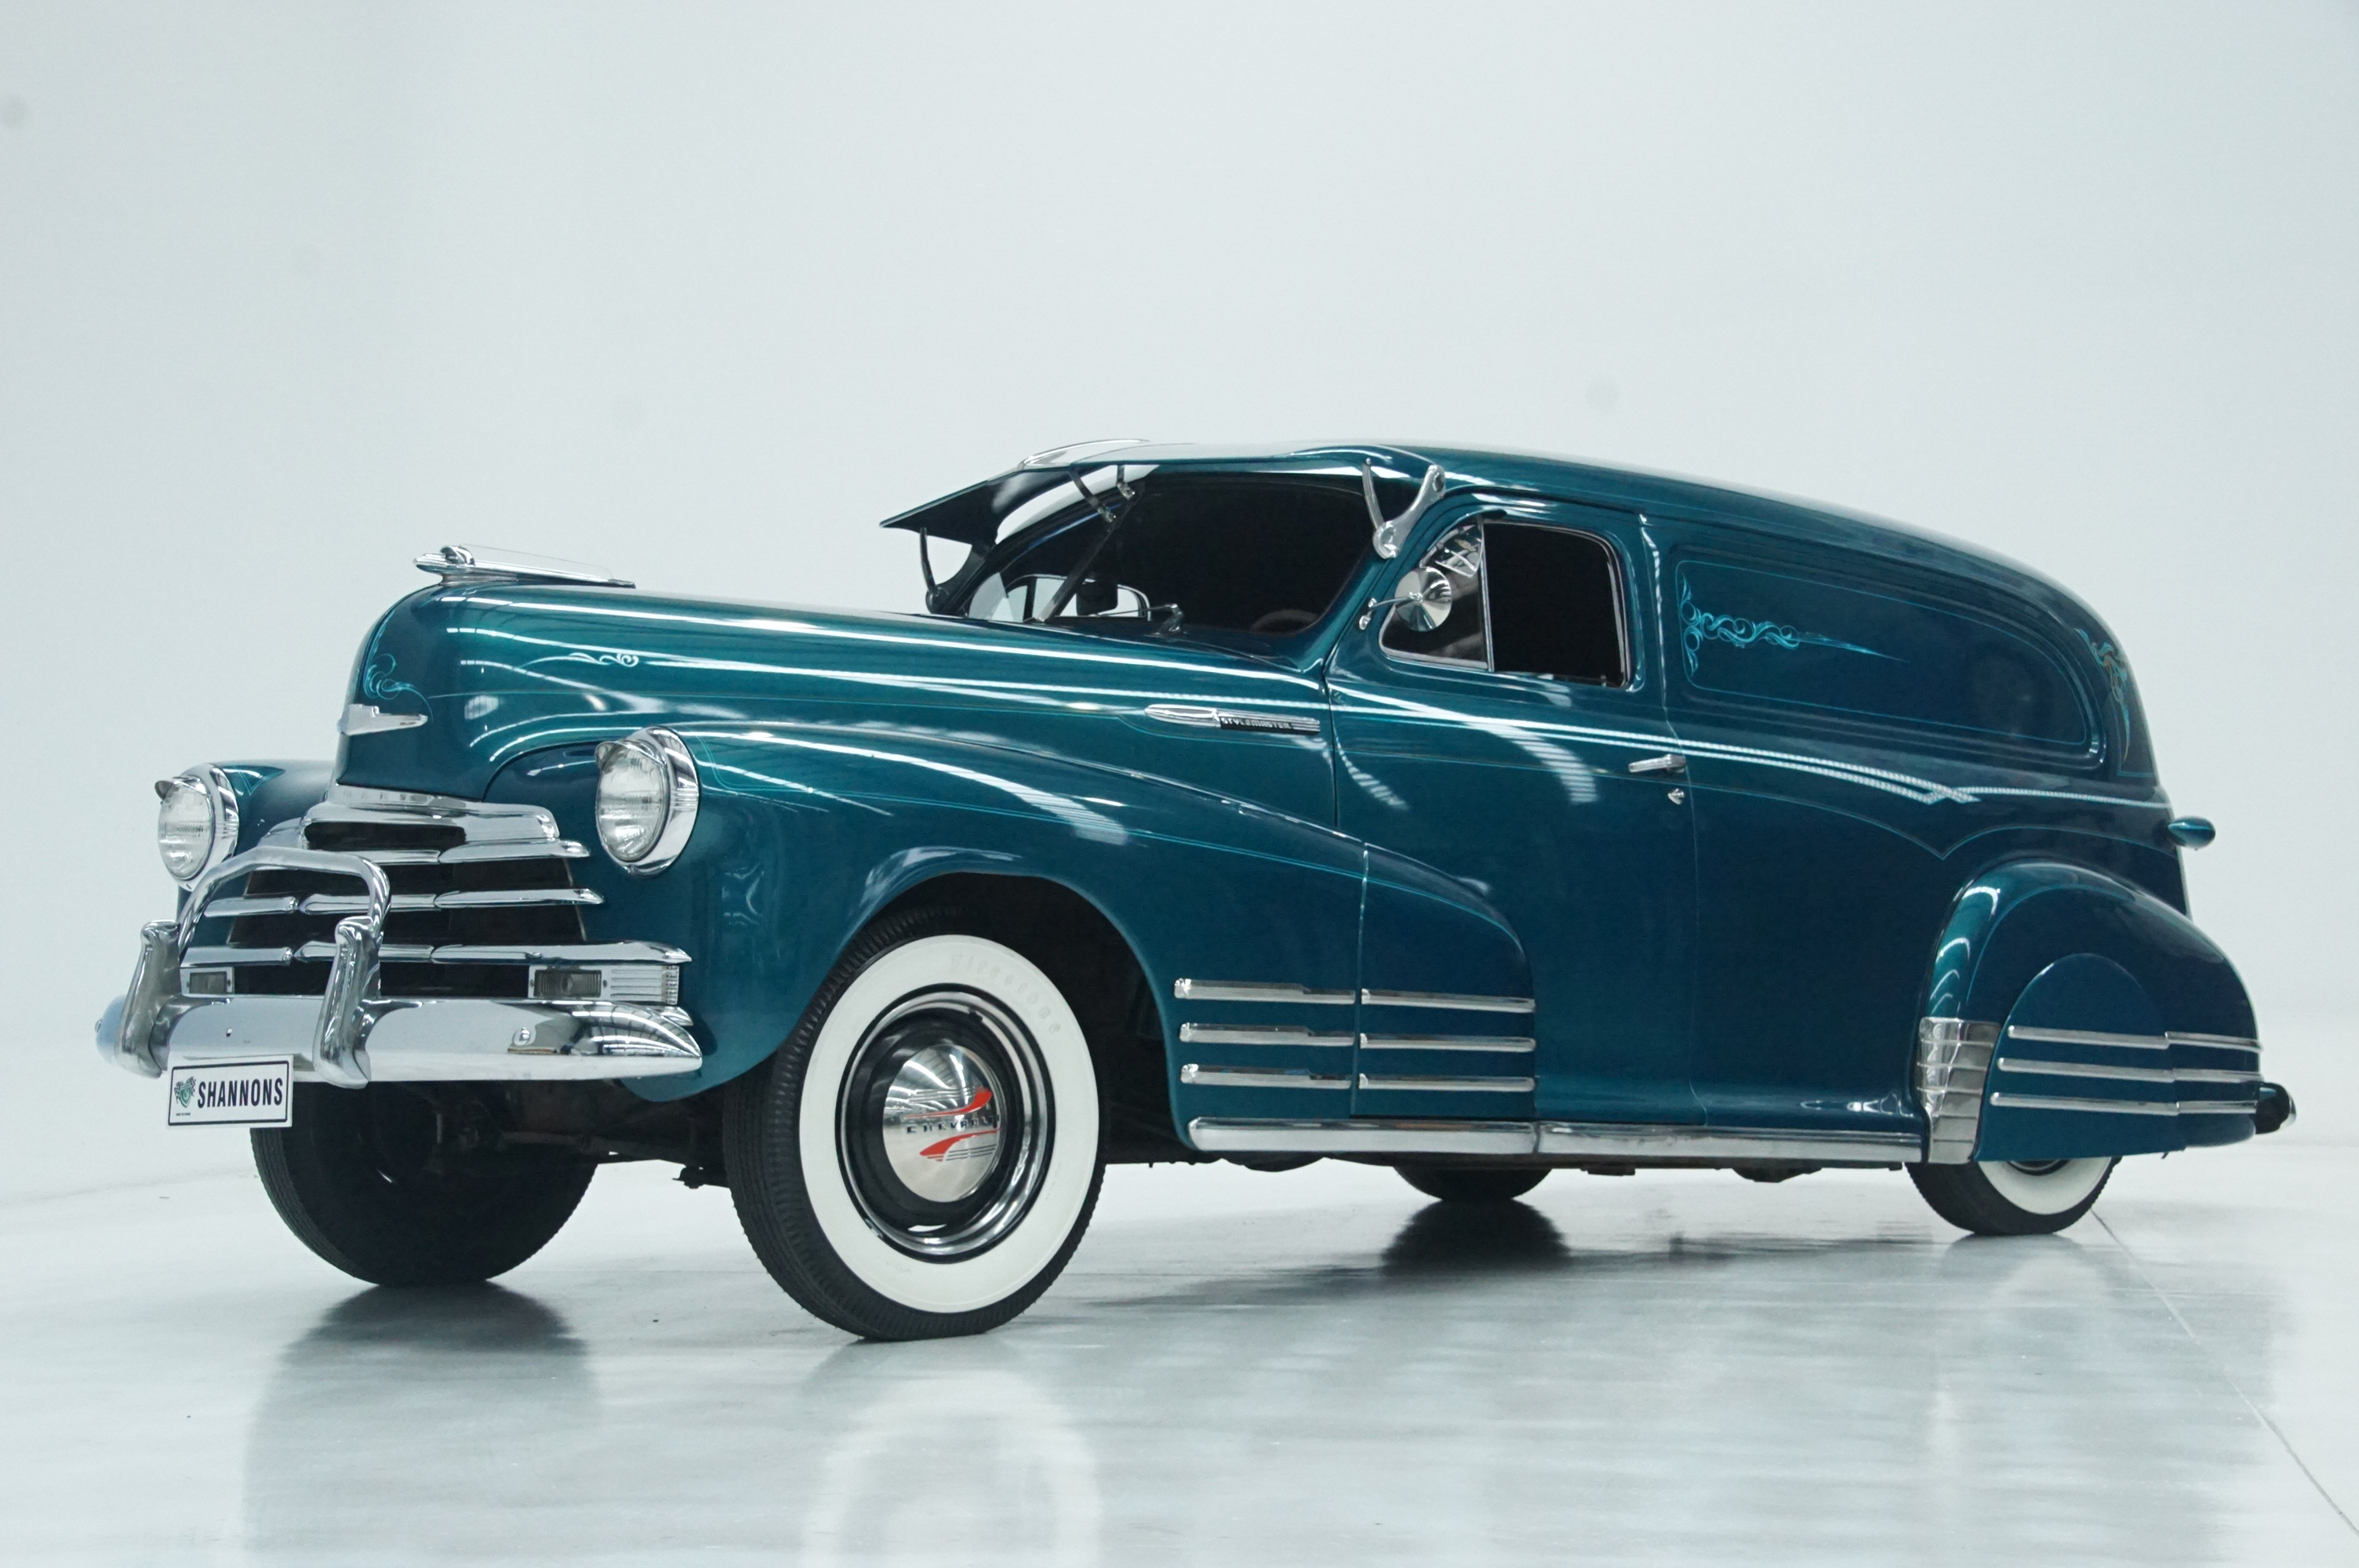 This stylish, US-built Custom 1948 Chevrolet Stylemaster Sedan Delivery Van, with its stock body enhanced by a number of custom accessories is expected to bring $45,000-$50,000 at Shannons Timed Online Auction, which runs from May 20 until June 3.